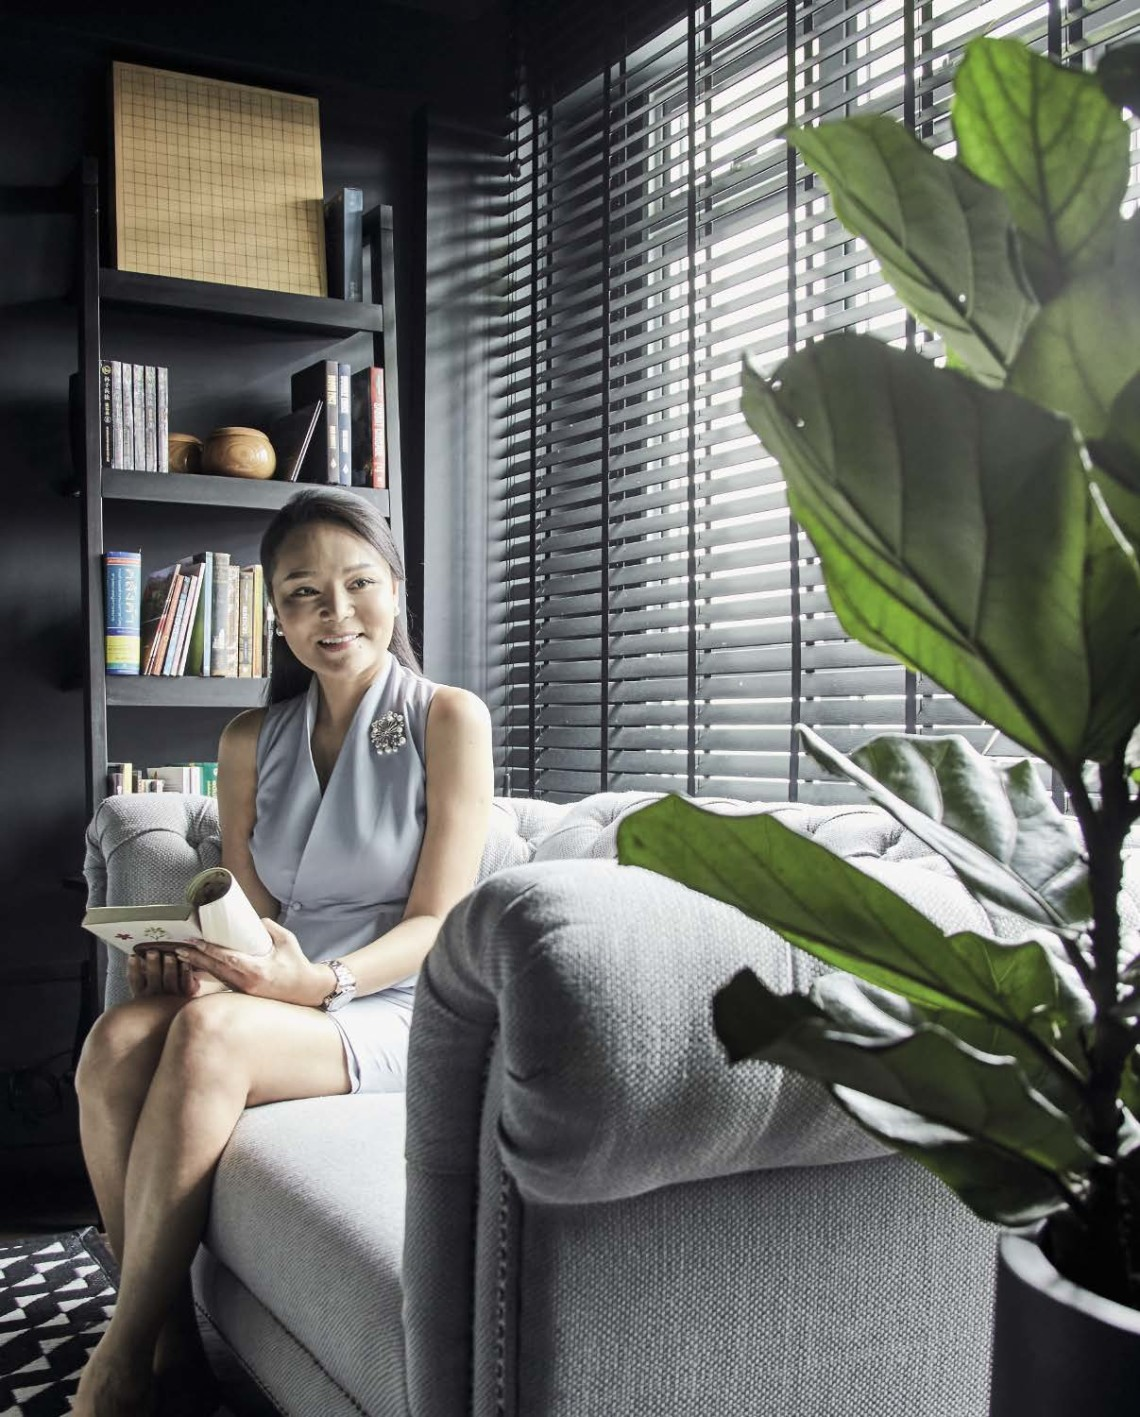 For Celine, who